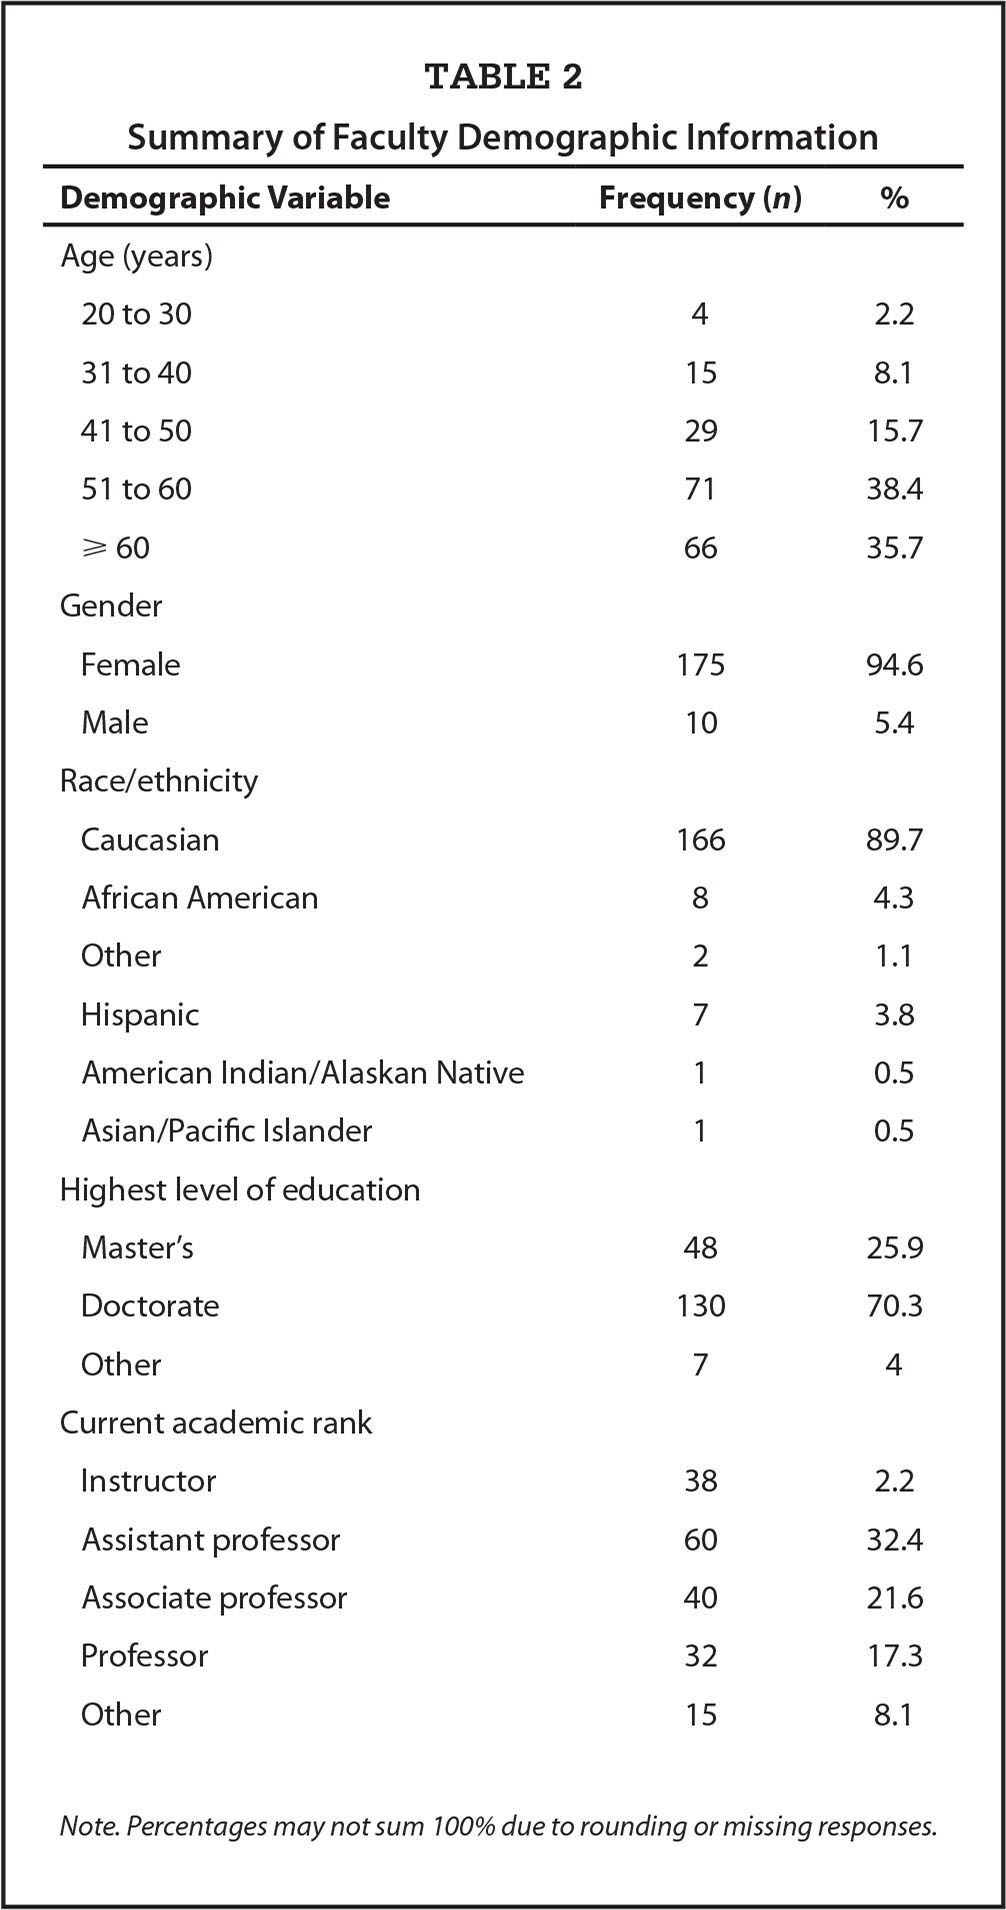 Summary of Faculty Demographic Information